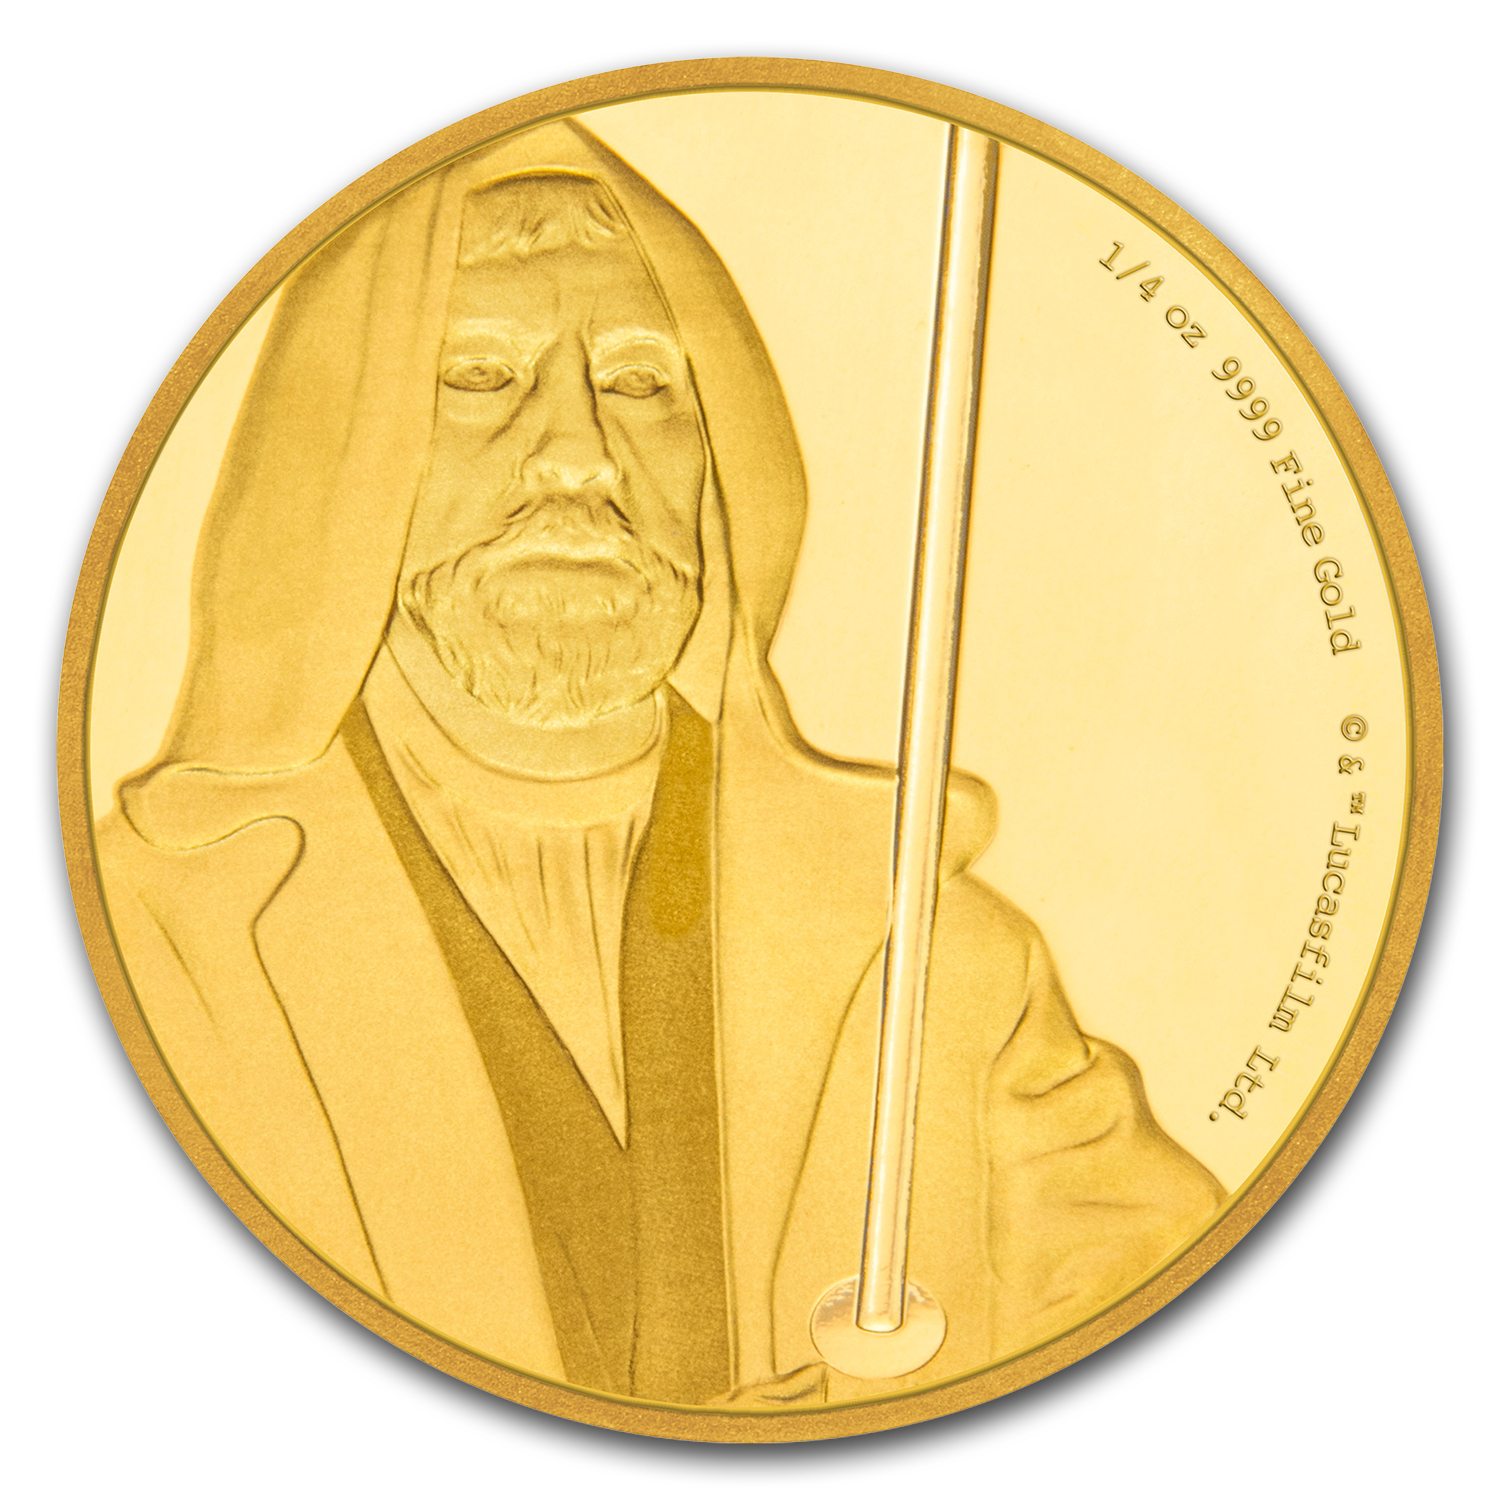 2017 Niue 1/4 oz Gold $25 Star Wars Obi-Wan Kenobi Pf (Box & COA)